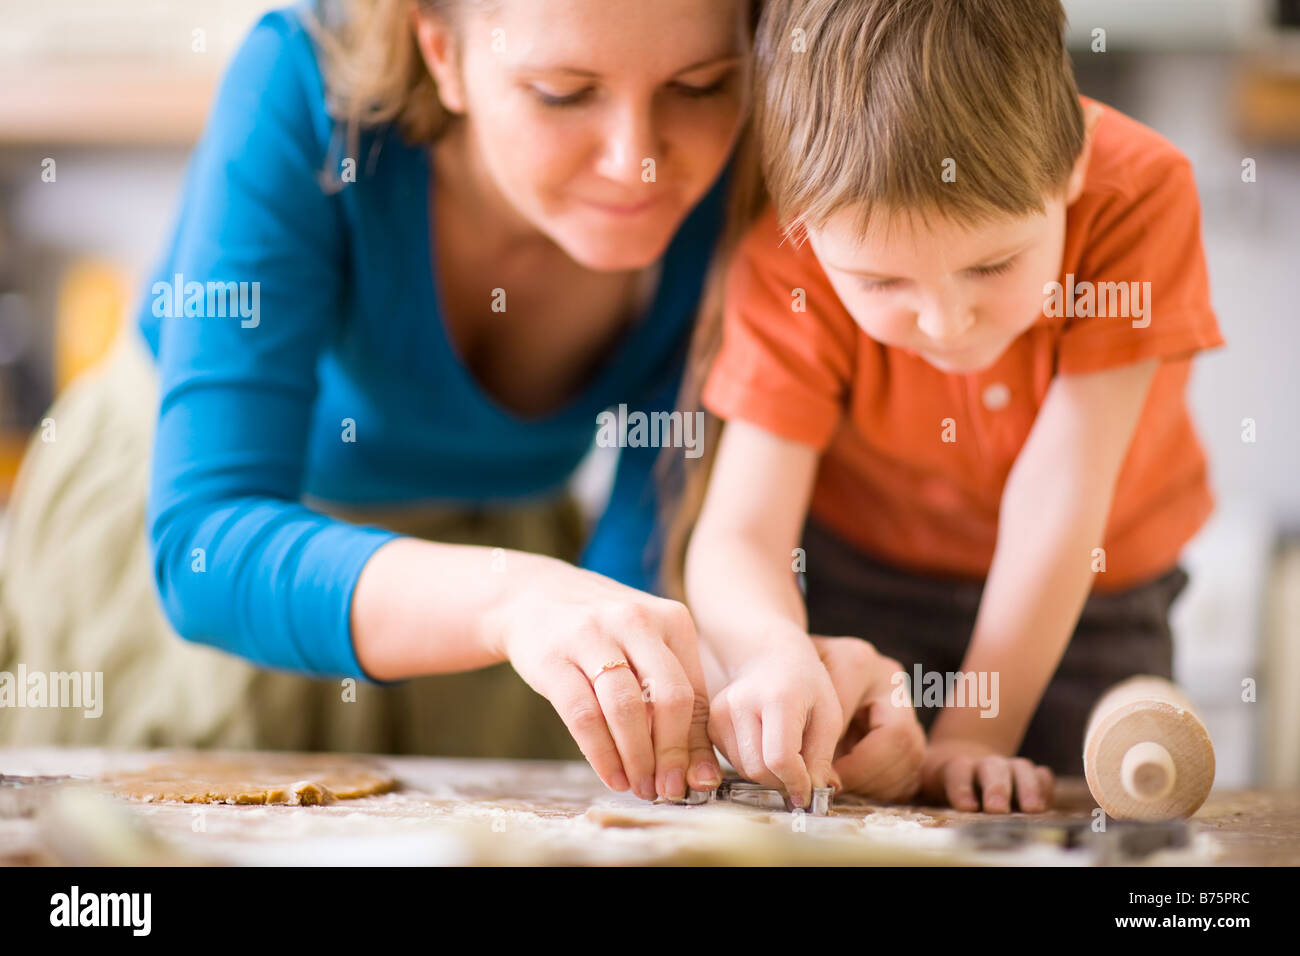 Young mother and son in kitchen making cookies - Stock Image